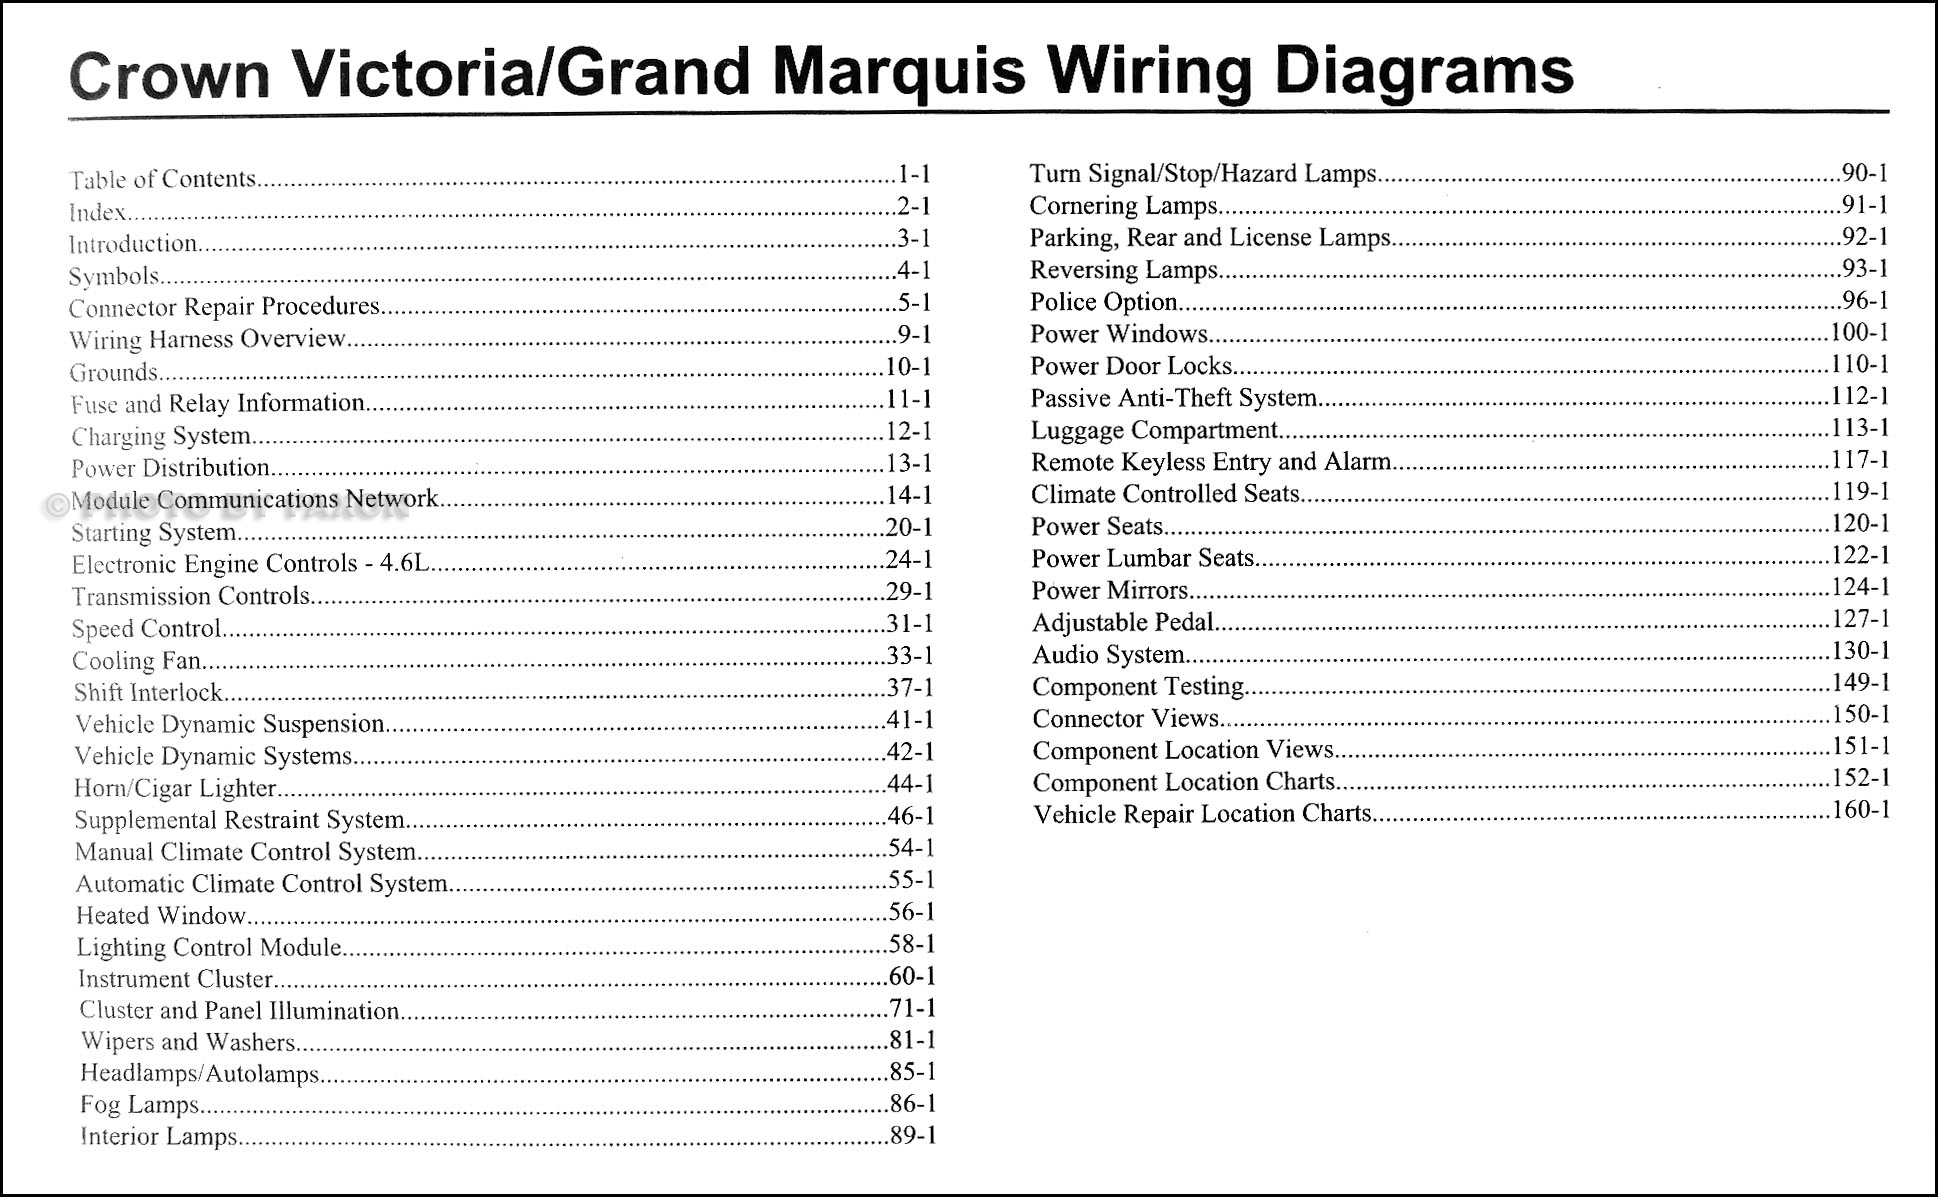 2009FordCrownVictoriaOWD TOC 2009 crown victoria & grand marquis original wiring diagram manual grand marquis wiring diagram at couponss.co